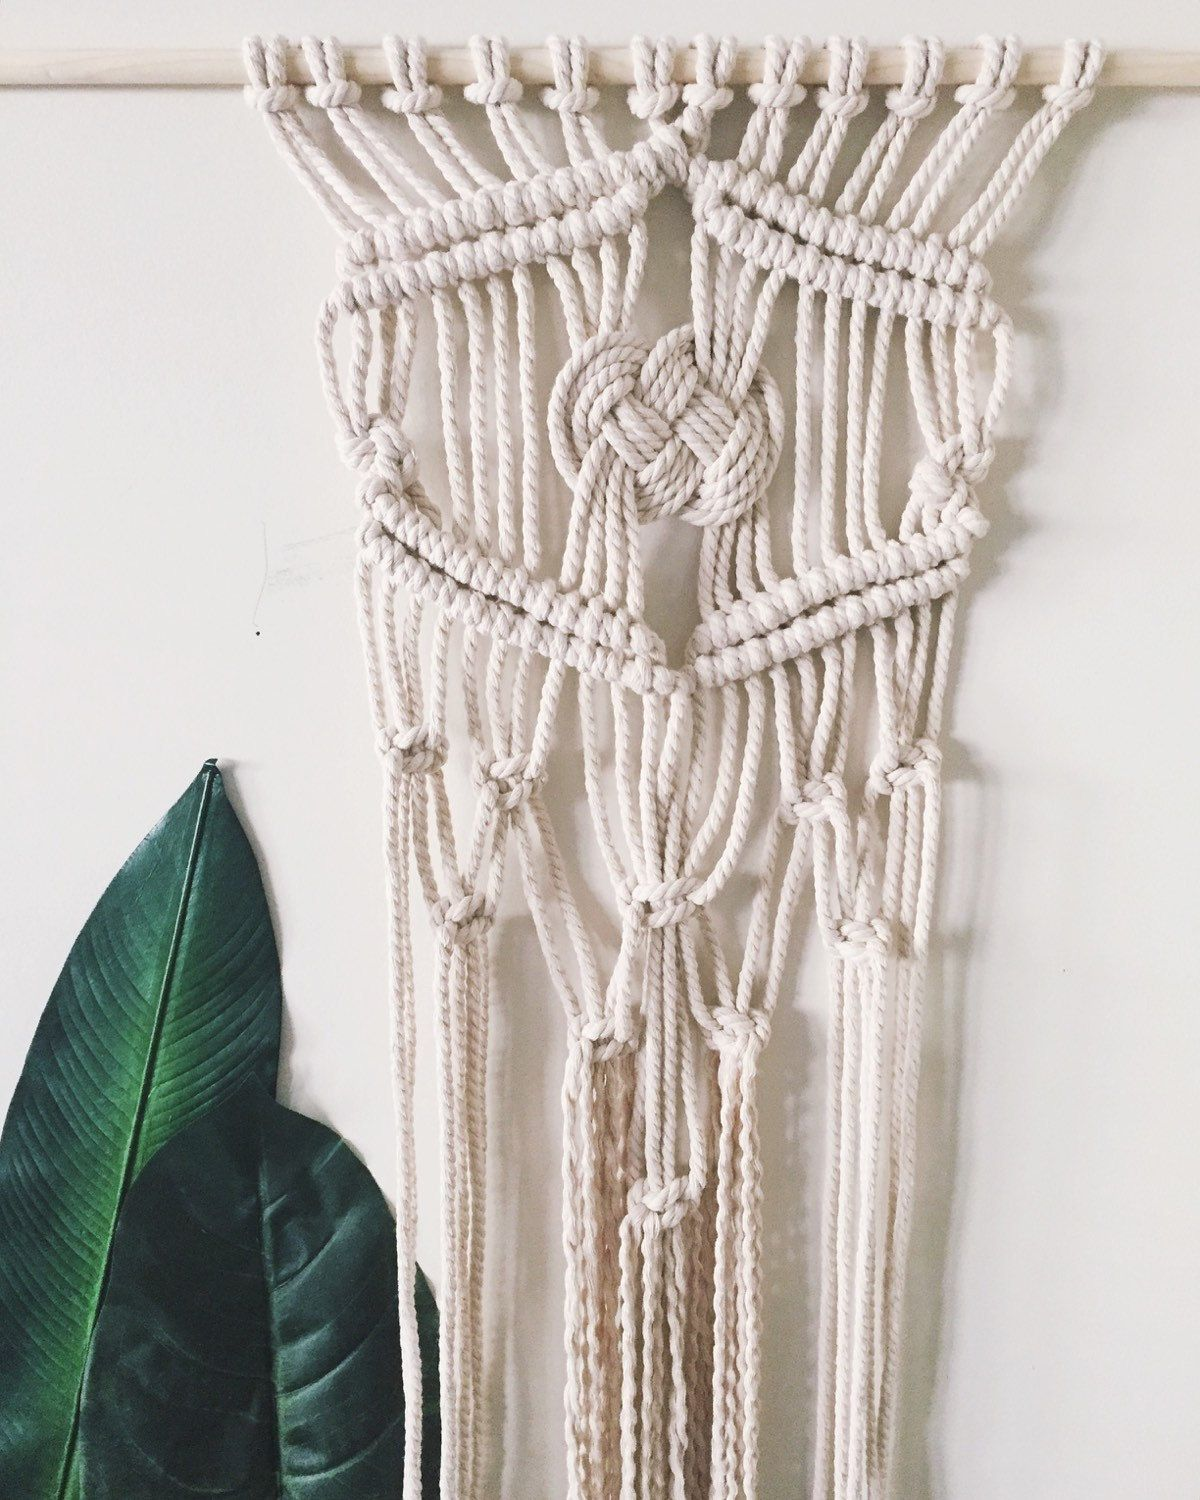 Sale Woven Rope Art Tffwht Macrame Wall Hanging Etsy Rope Art Macrame Wall Hanging Weaving Wall Hanging